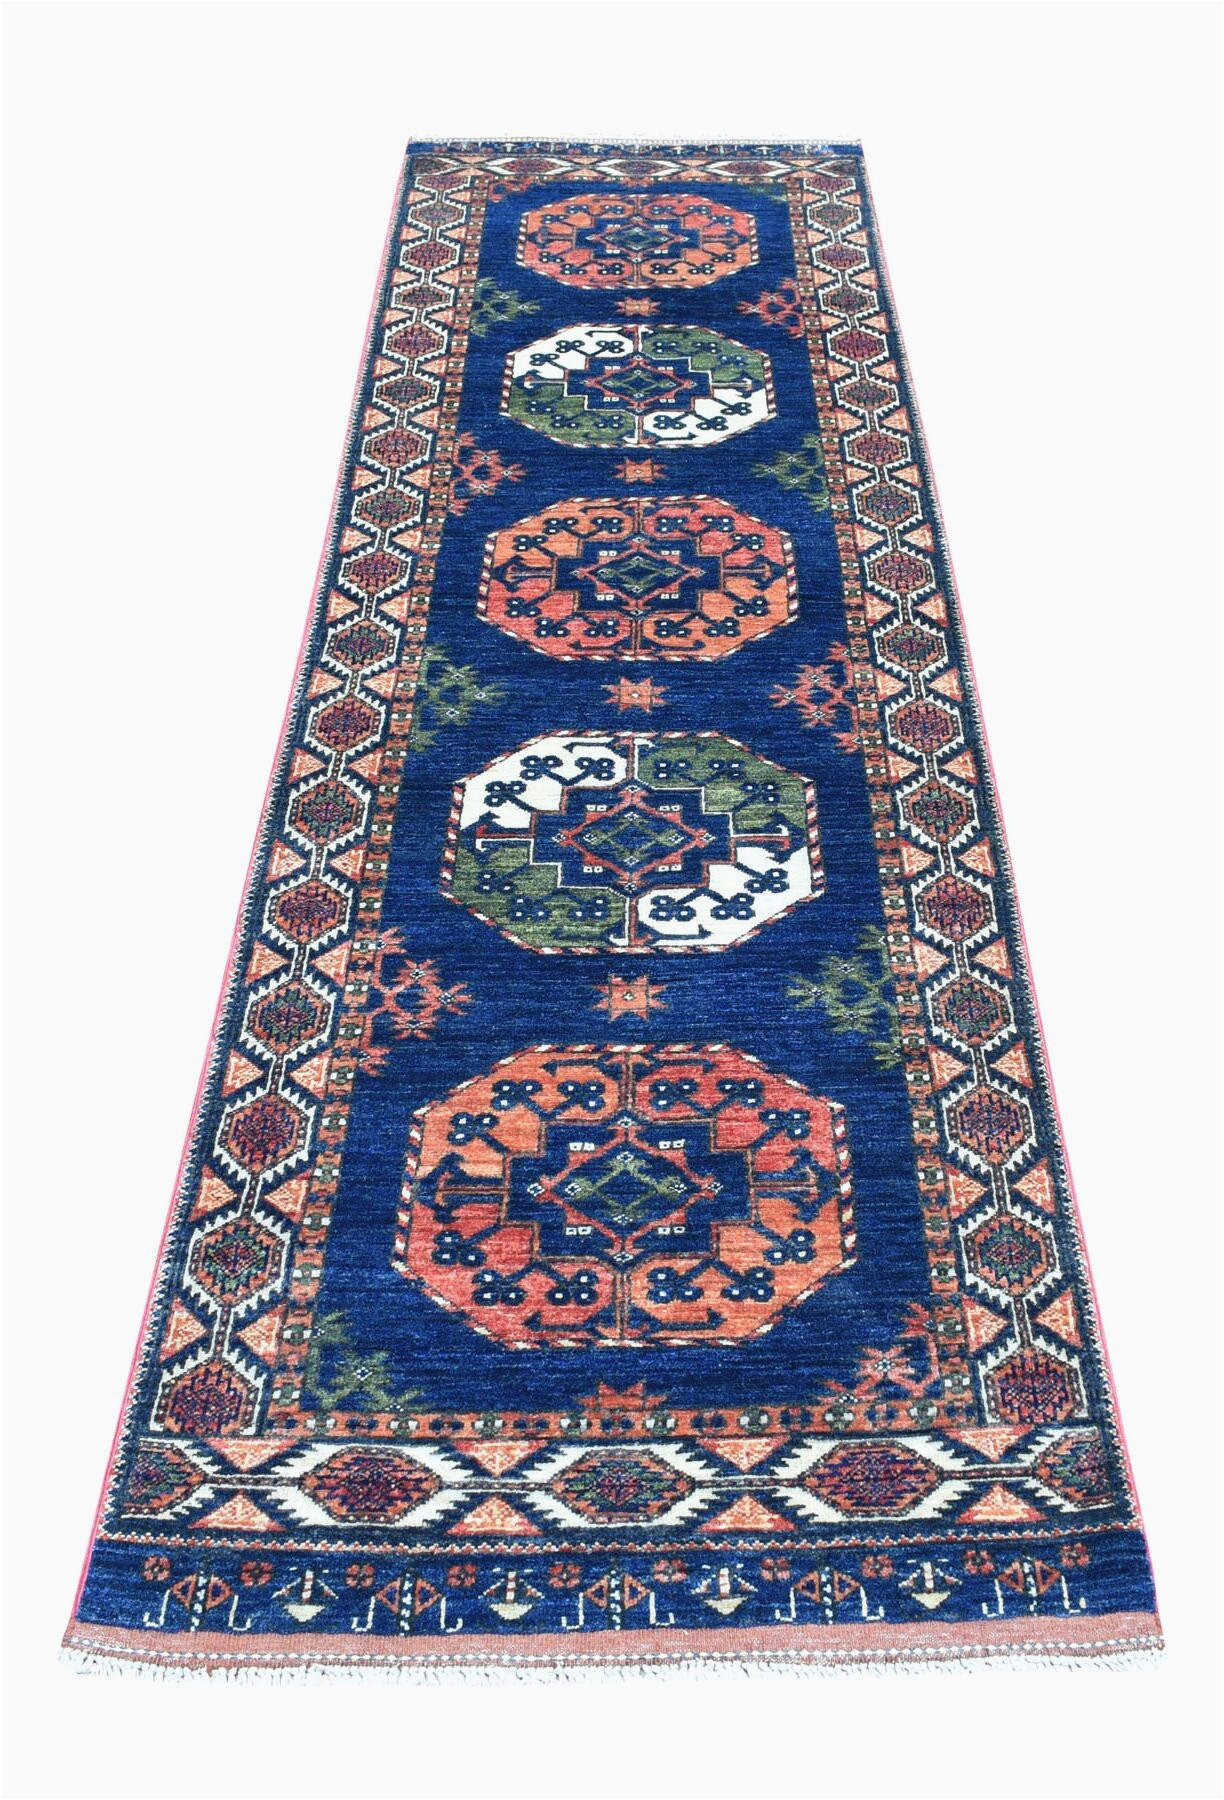 isabelline one of a kind hand knotted orangeblue 28 x 97 runner wool area rug w